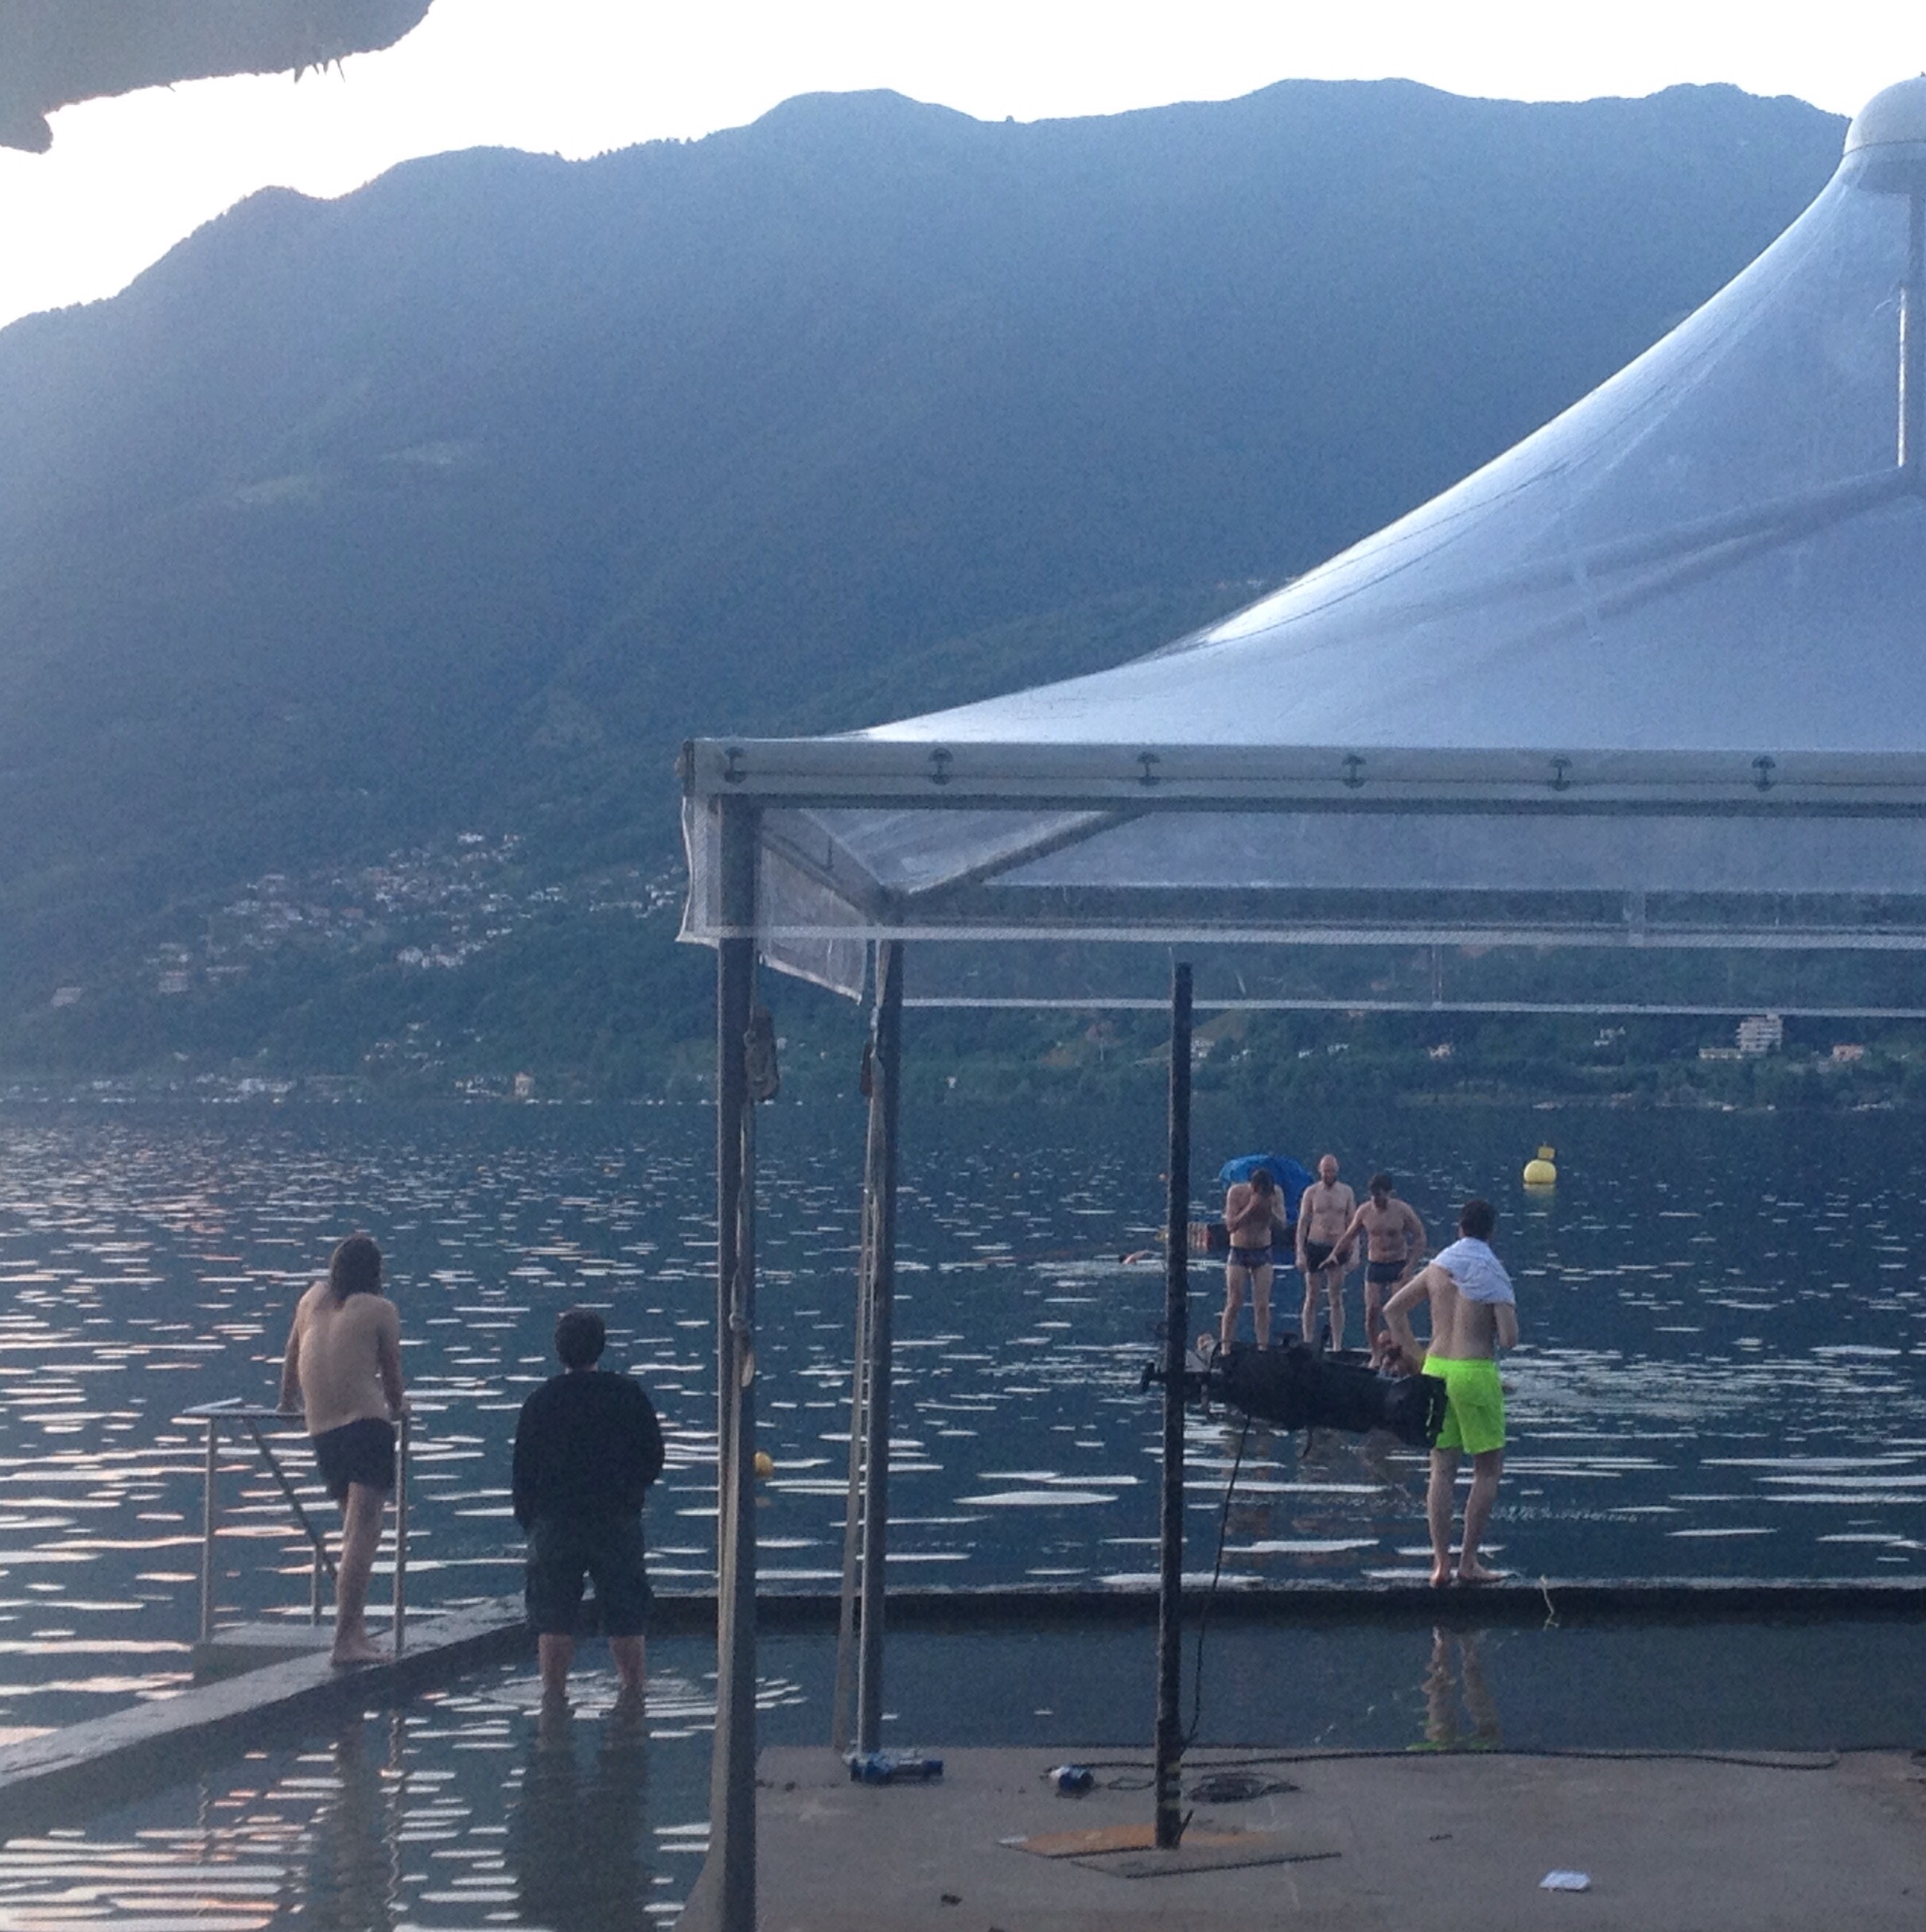 Swimming by the bandstand at Lake Maggiore, Ascona